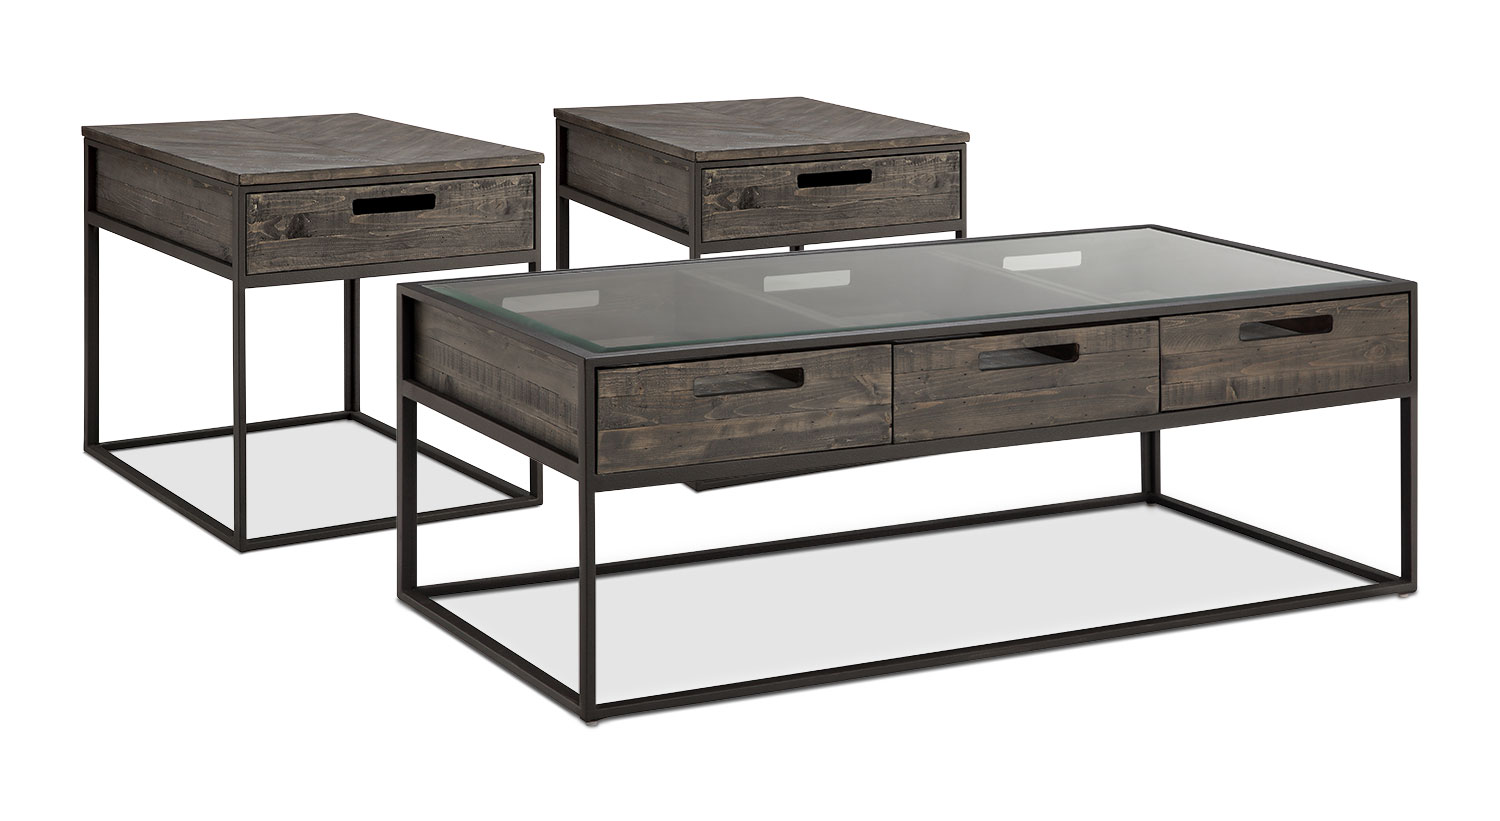 Calistoga 3-Piece Coffee and 2 End Tables Package